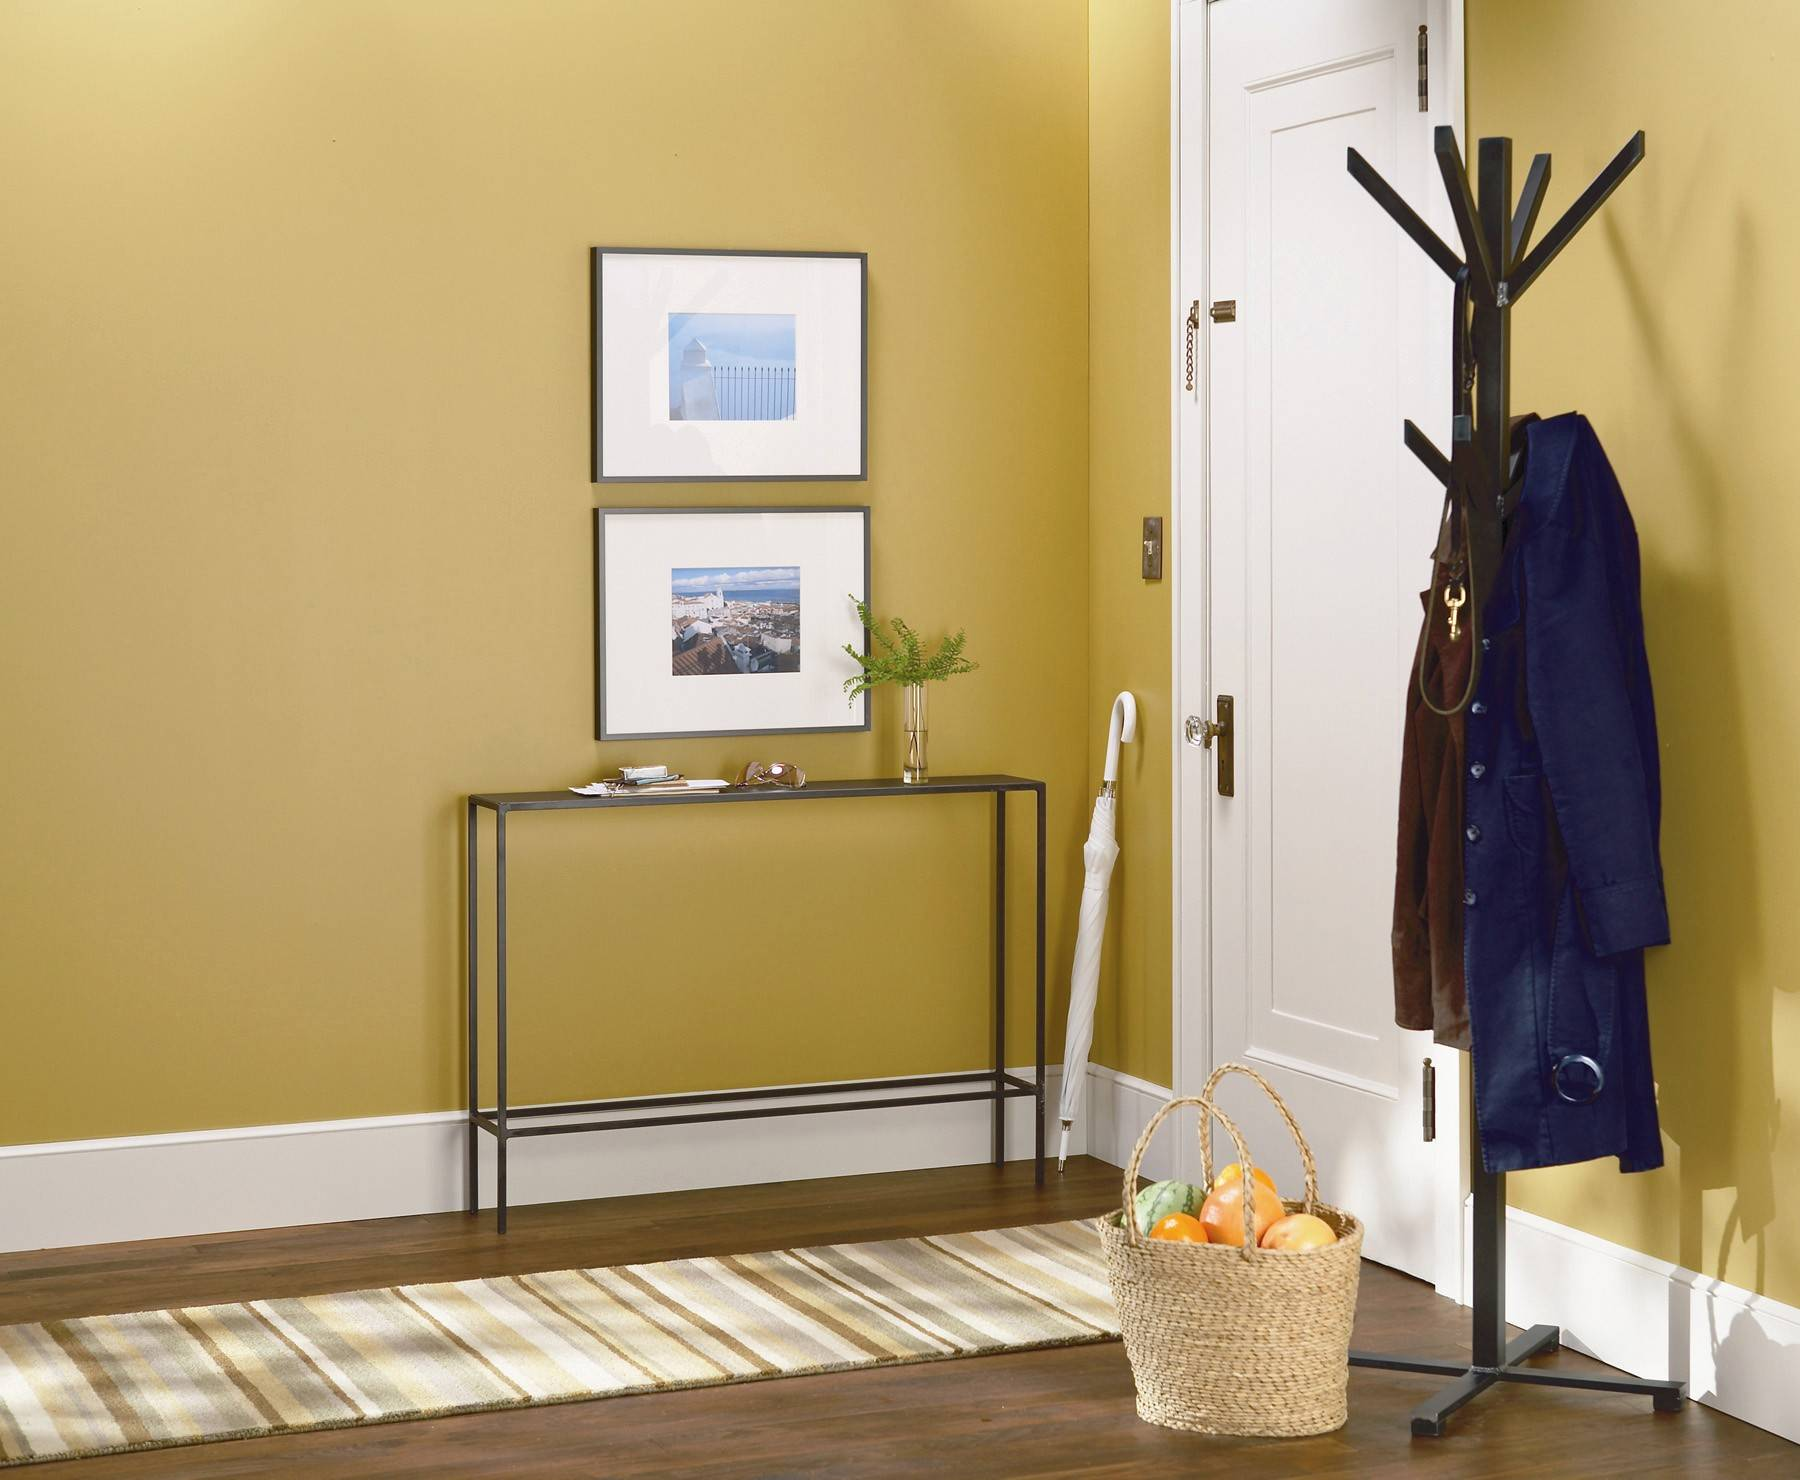 Small apartments or tiny cottages often lack an entry foyer, so those living in confined arrangements need to create their own version.